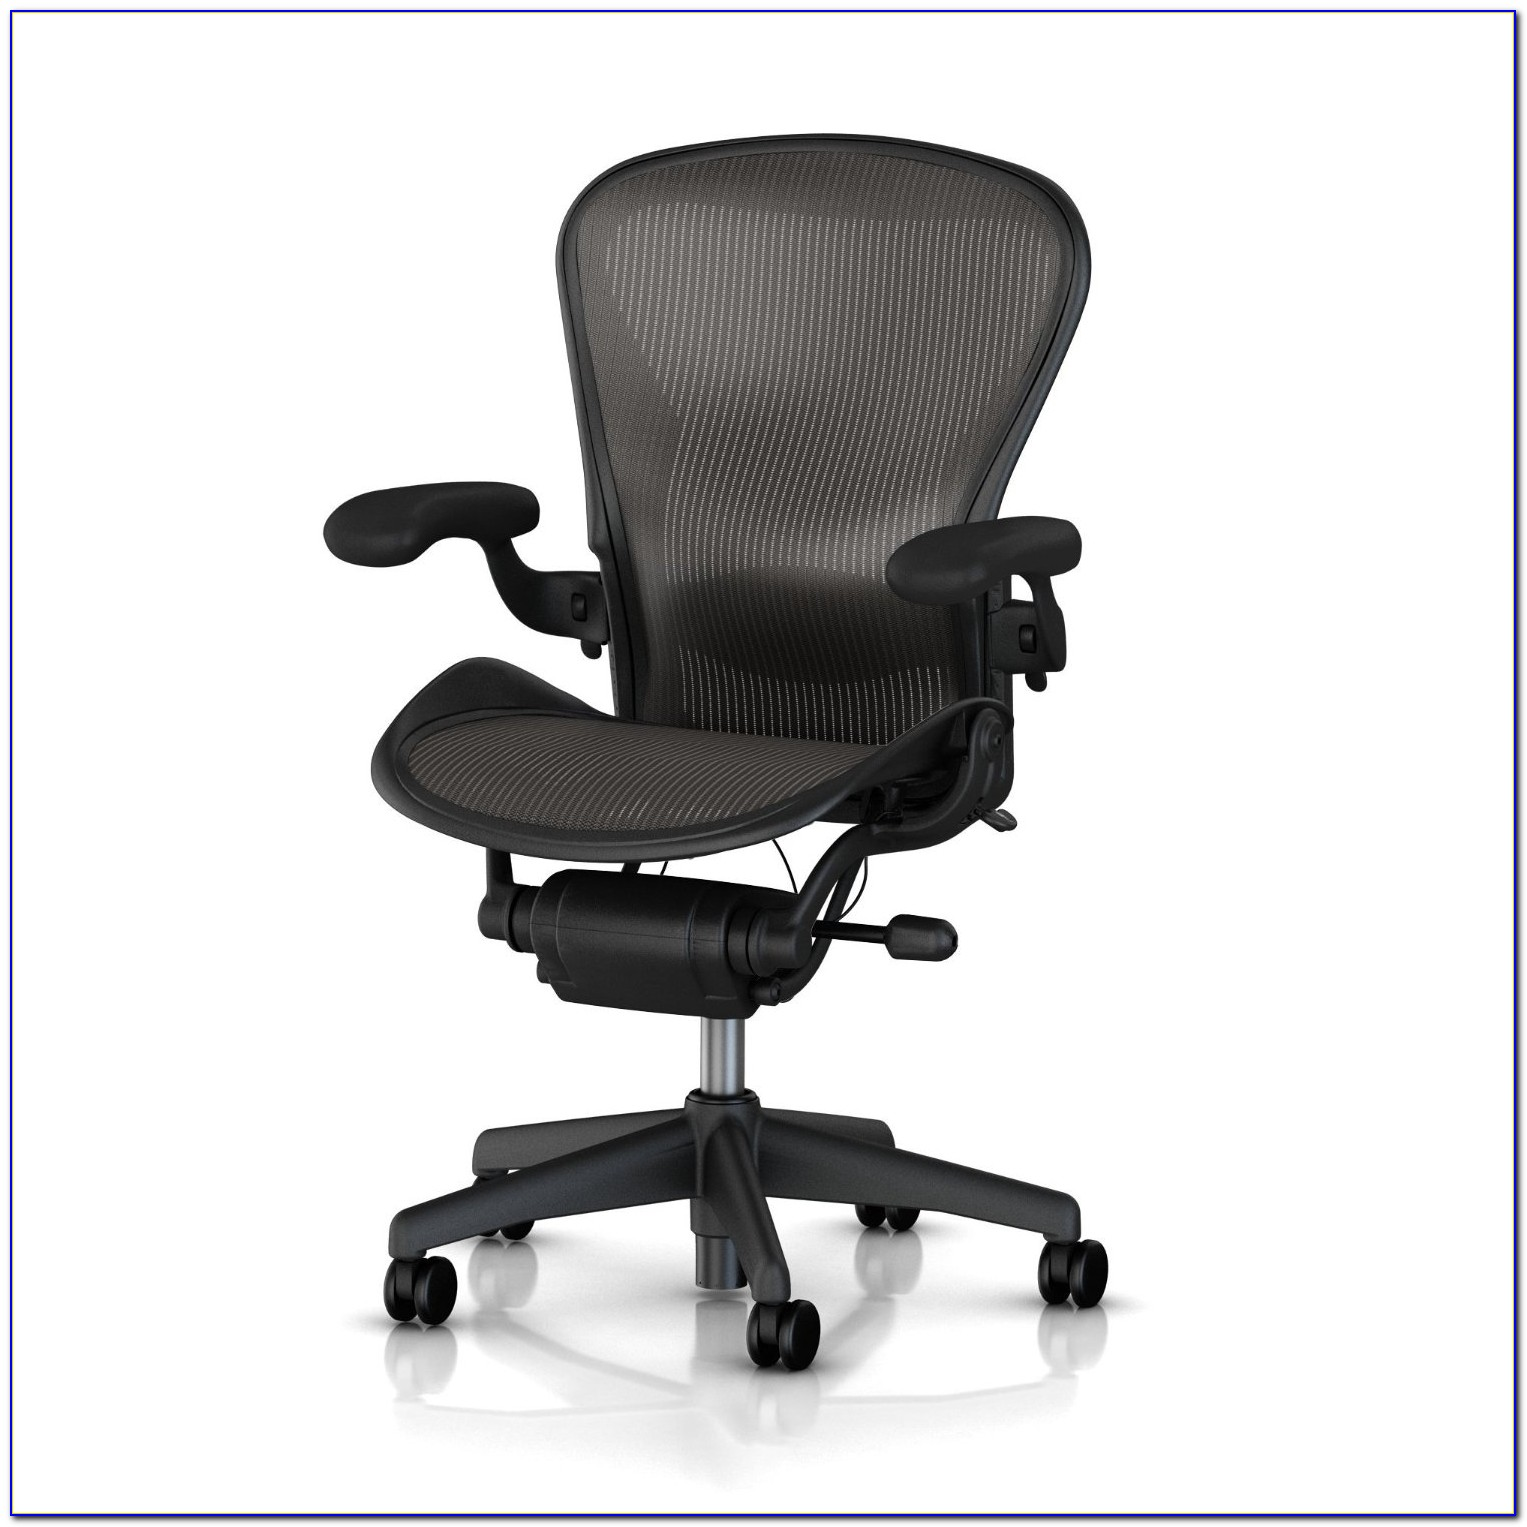 Herman Miller Aeron Chair Headrest